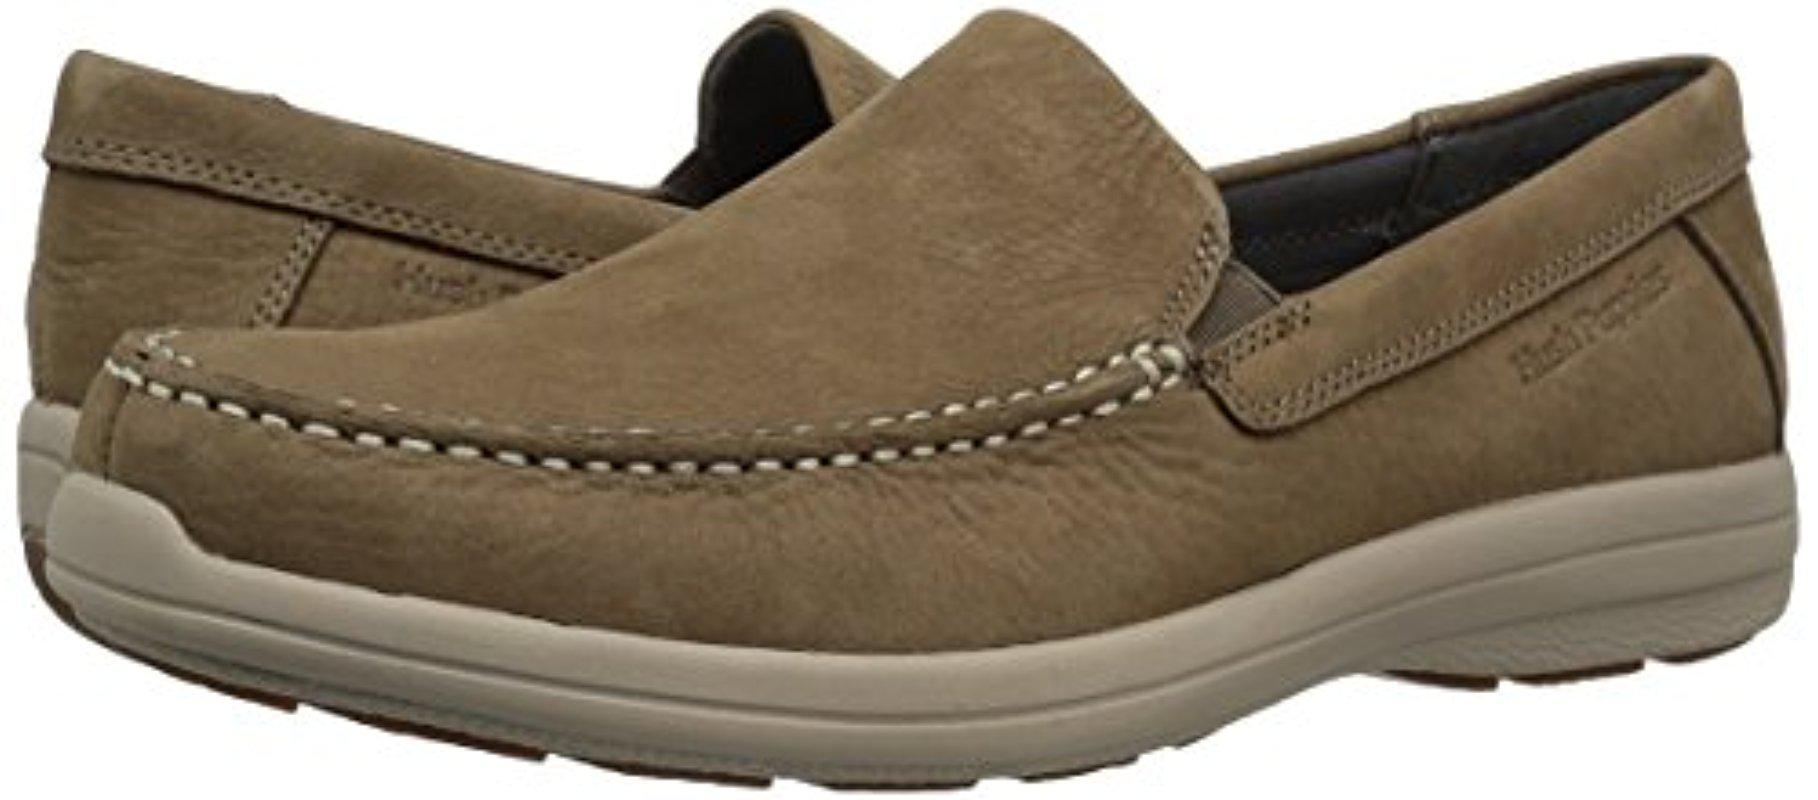 Hush Puppies Mens Brevis Patterson Slip-On Loafer